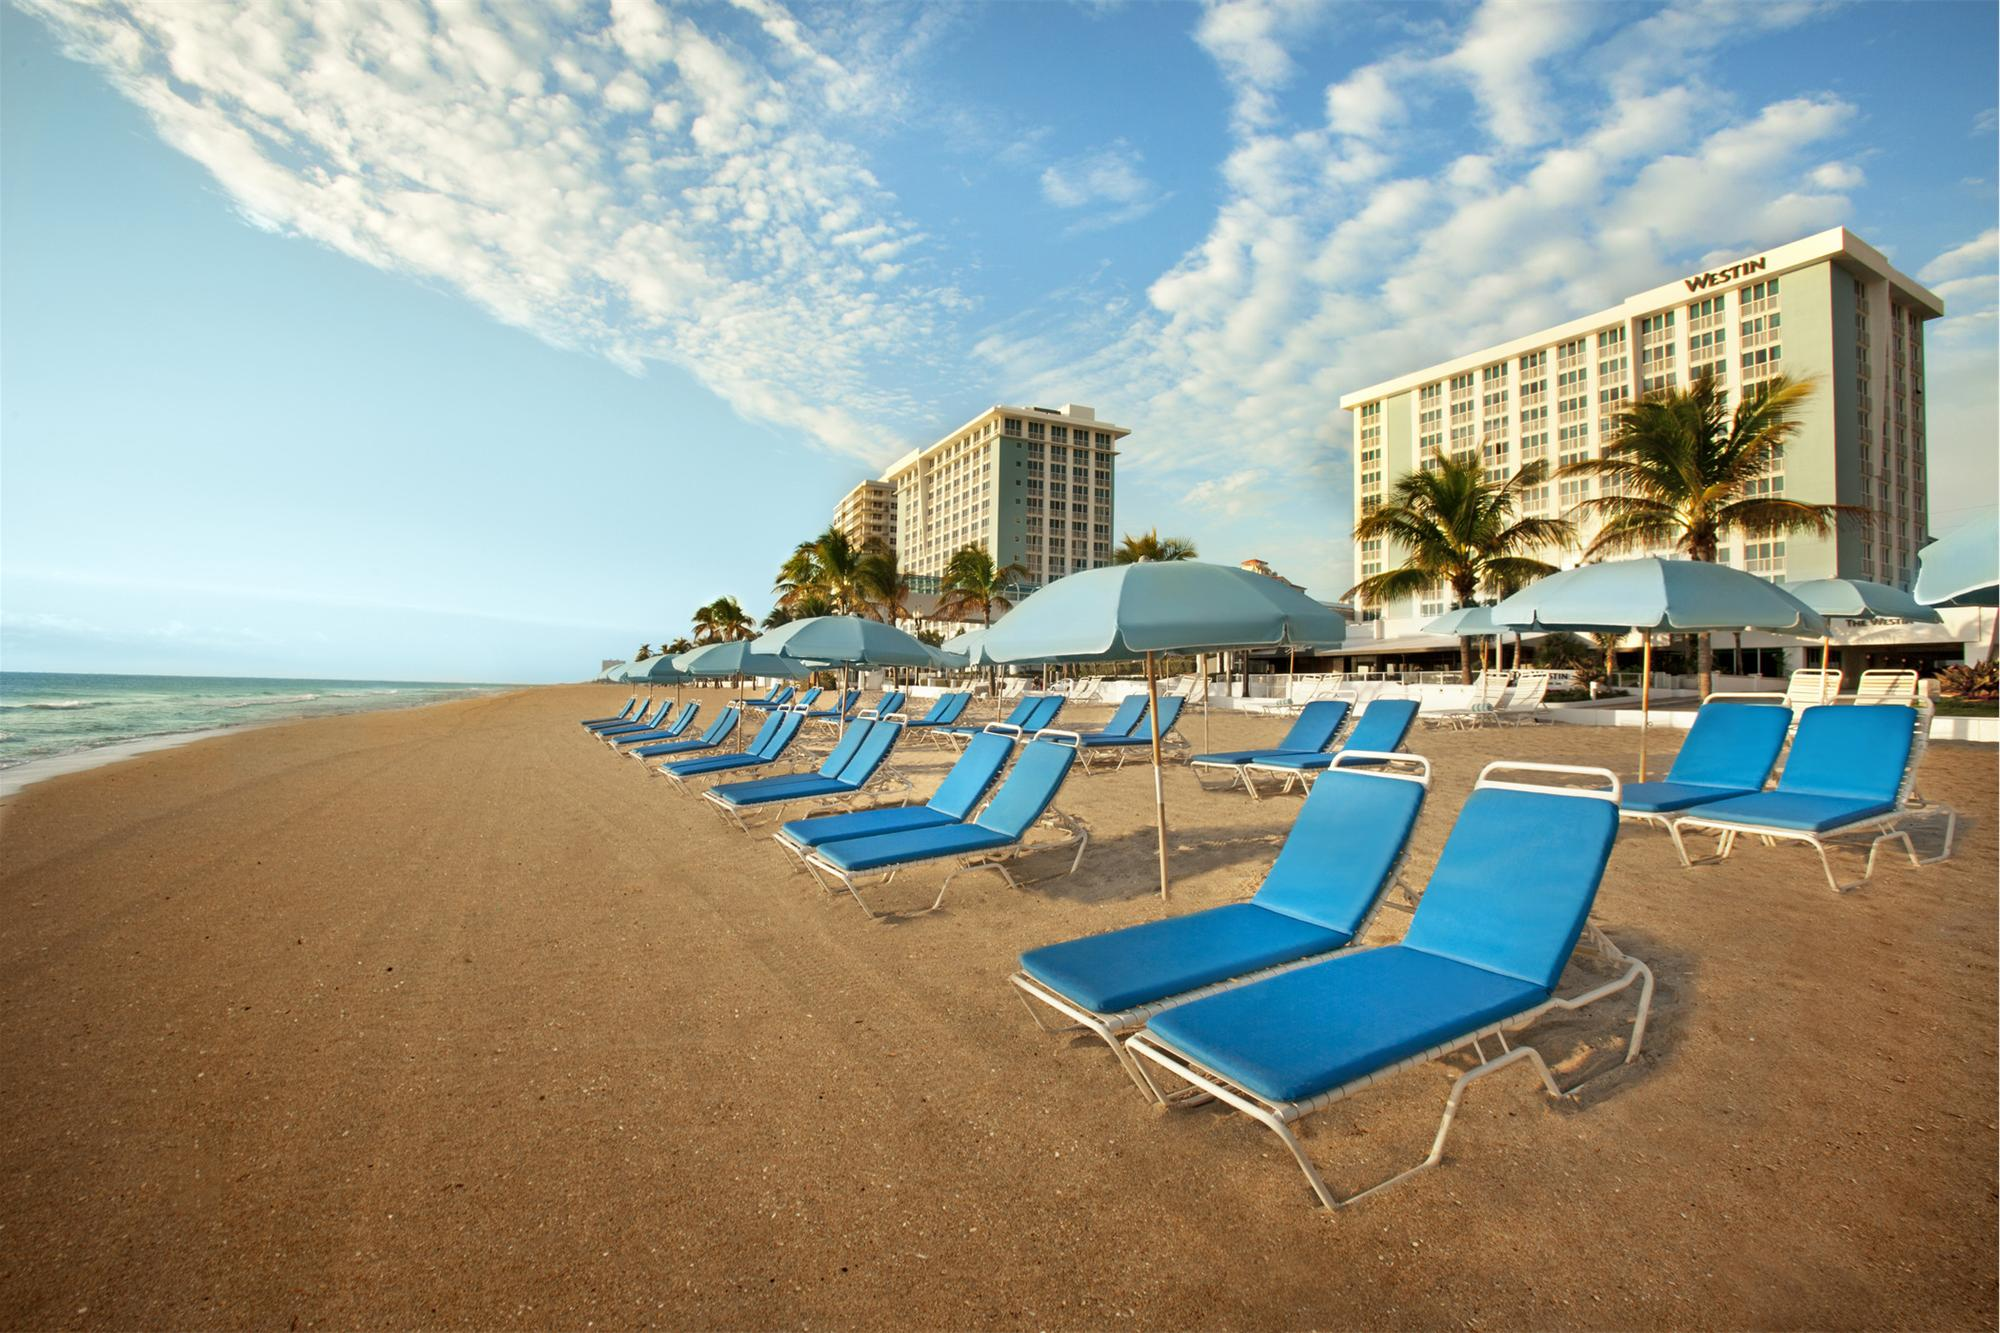 The Westin Beach Resort  Spa  FloridaHolidayscouk